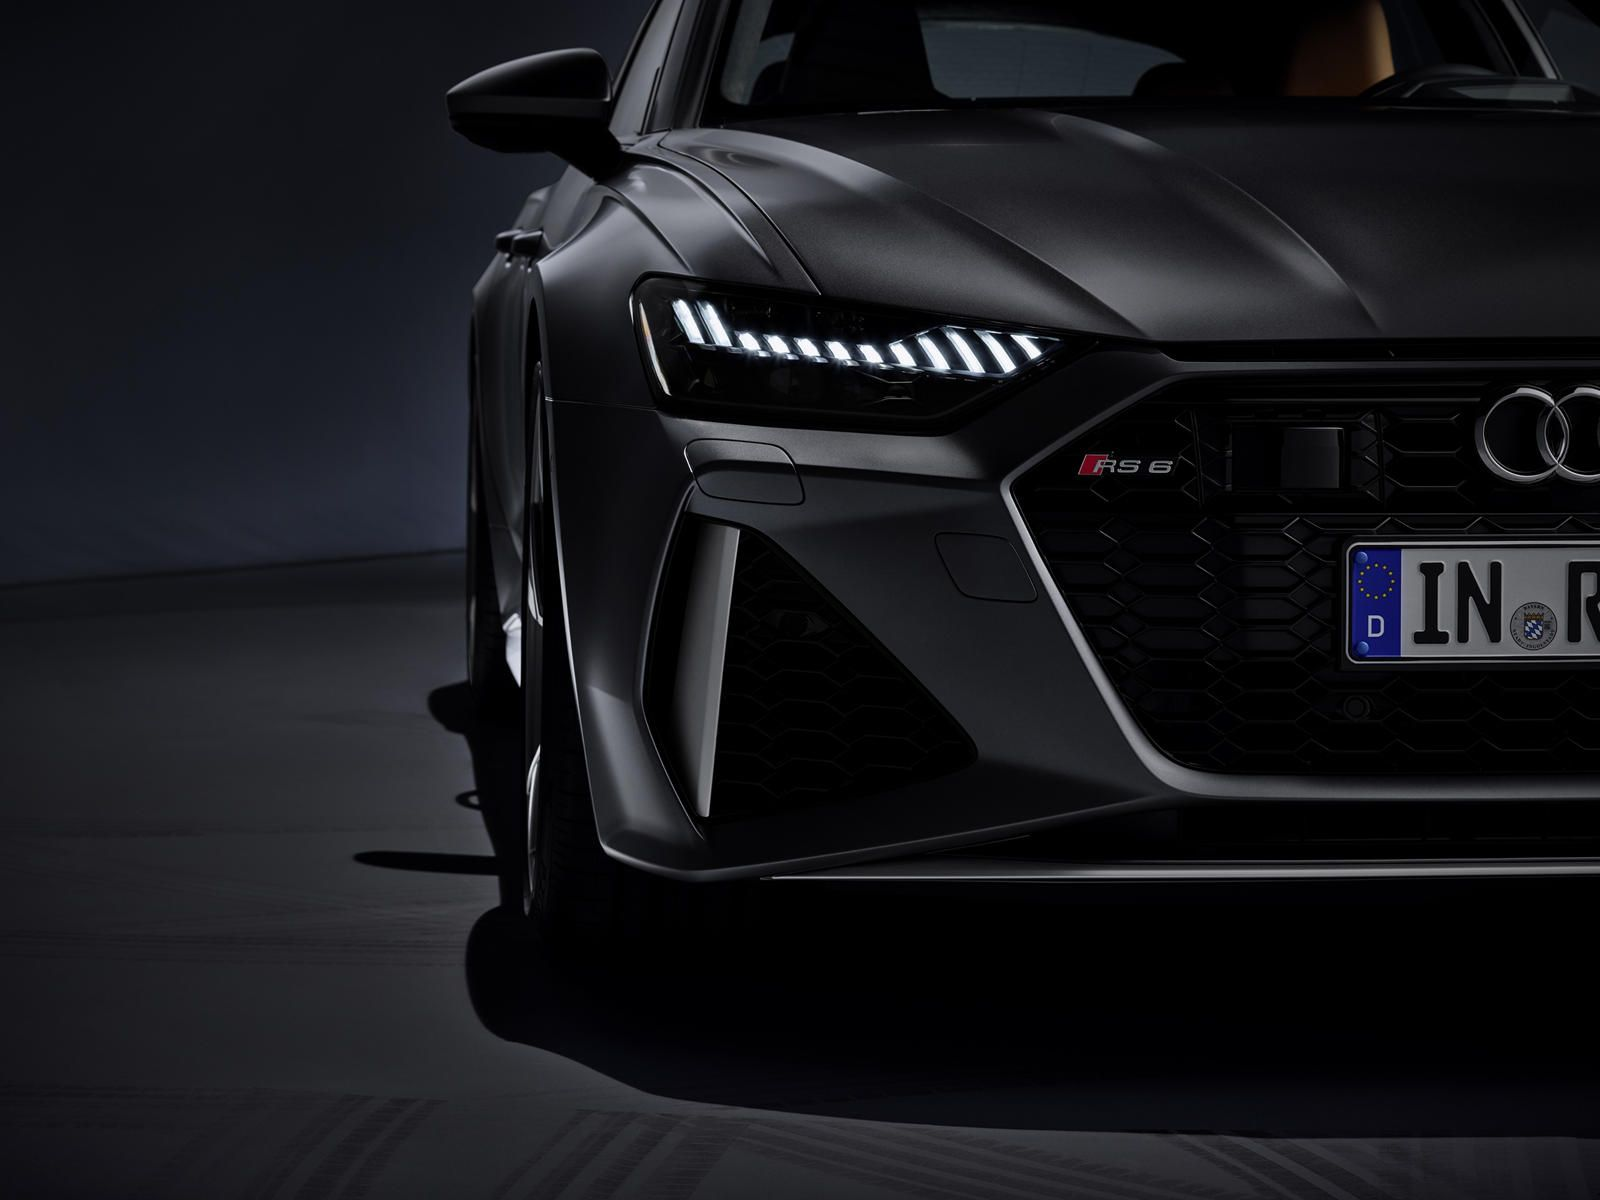 2020 Audi Rs6 Avant Review Trims Specs And Price Carbuzz In 2020 Audi Rs Audi Rs6 Audi